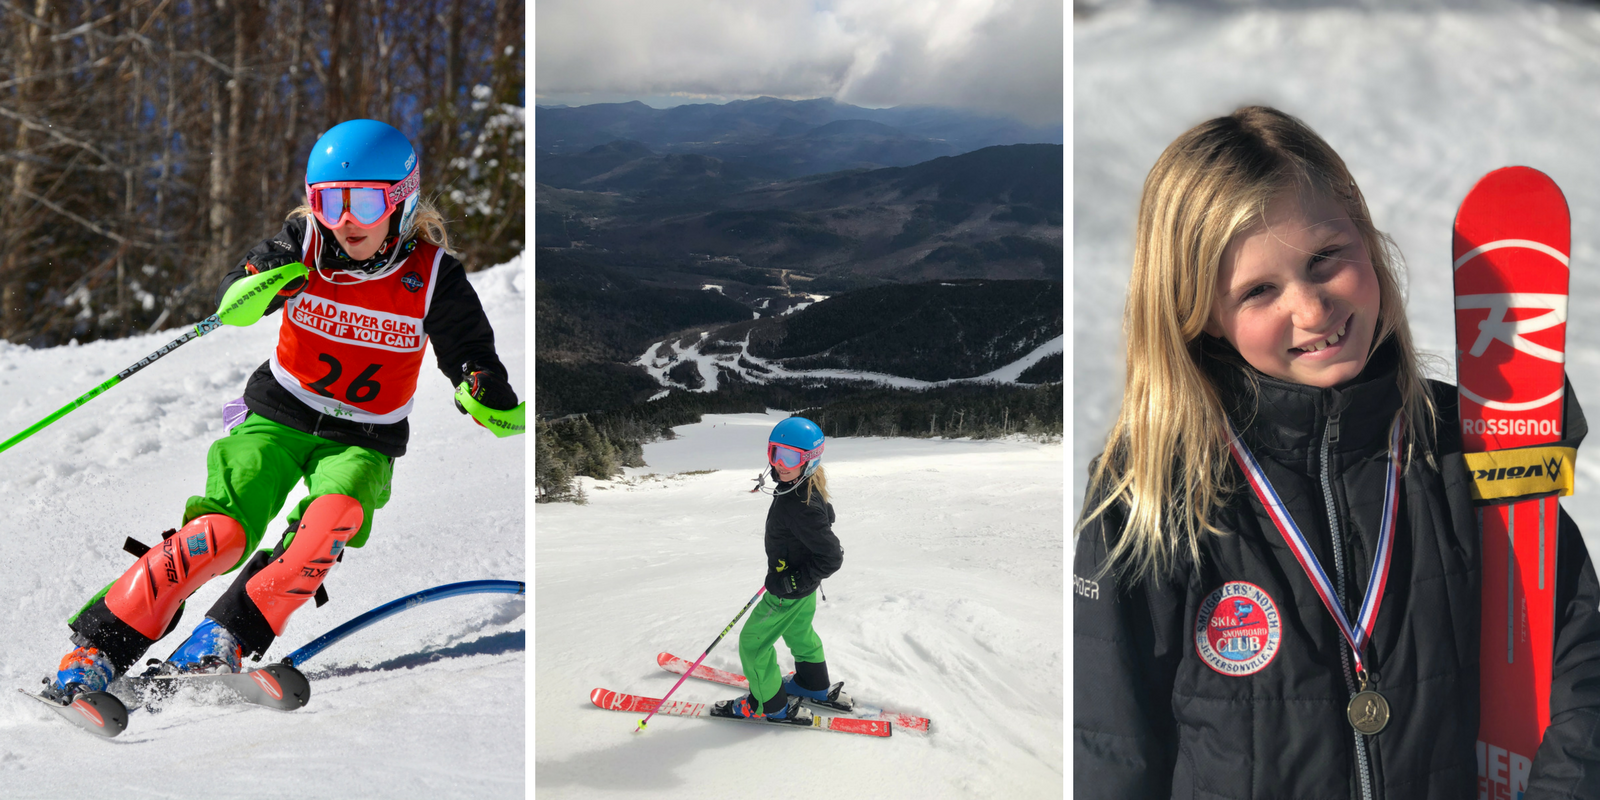 Vermont ski racer Chloe Avery of Smugglers Notch Ski and Snowboard Club lives by the mantra Always Be Faster Than the Boys (A.B.F.T.T.B.)